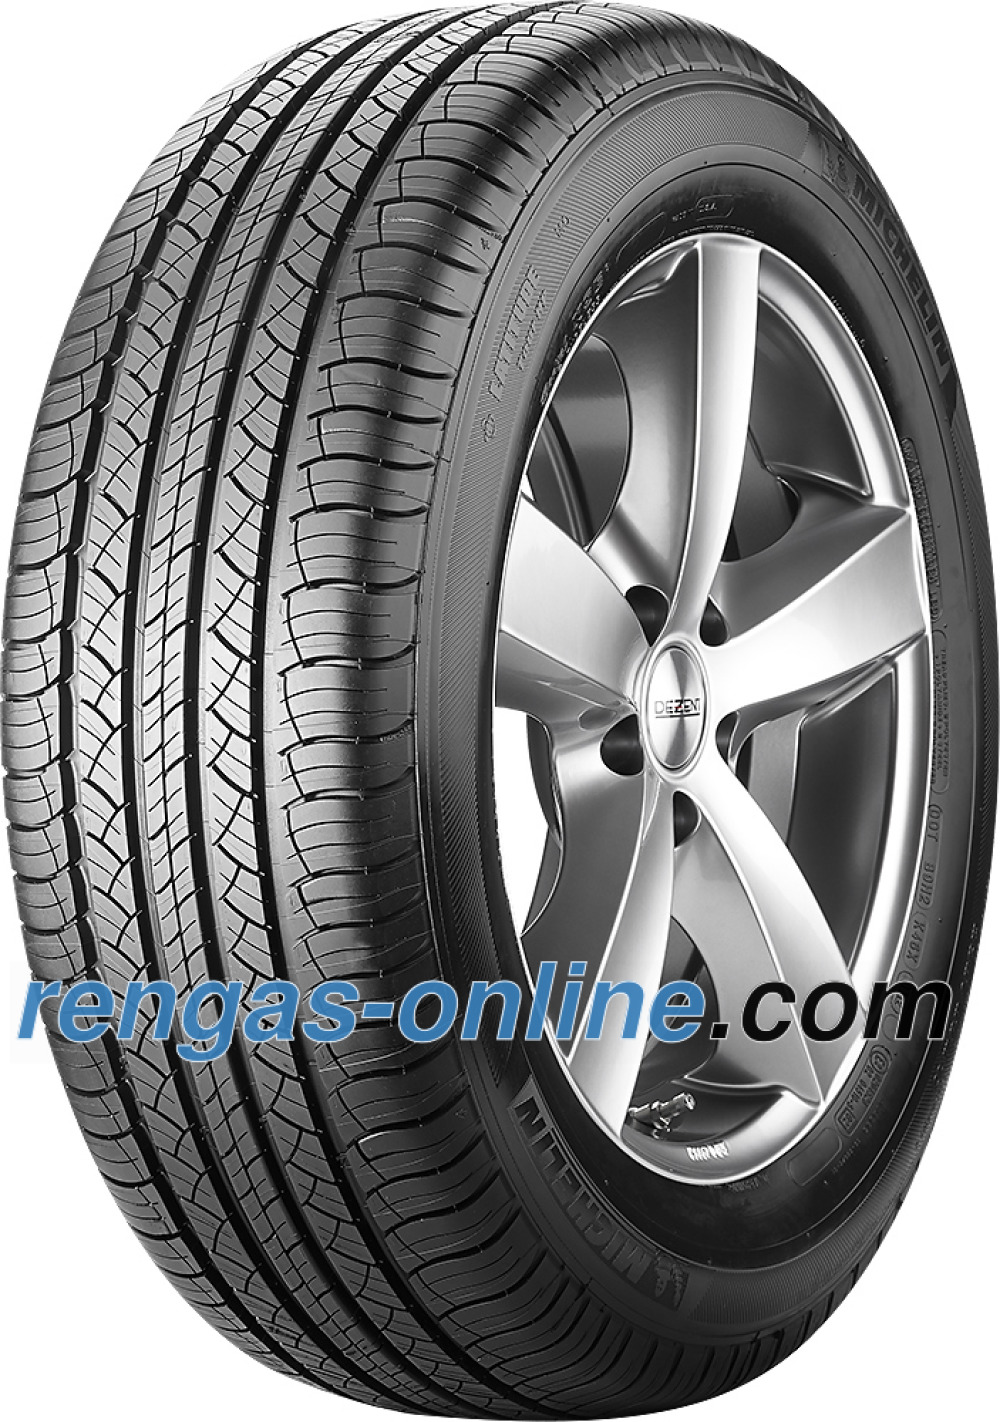 michelin-latitude-tour-hp-26560-r18-110v-mo